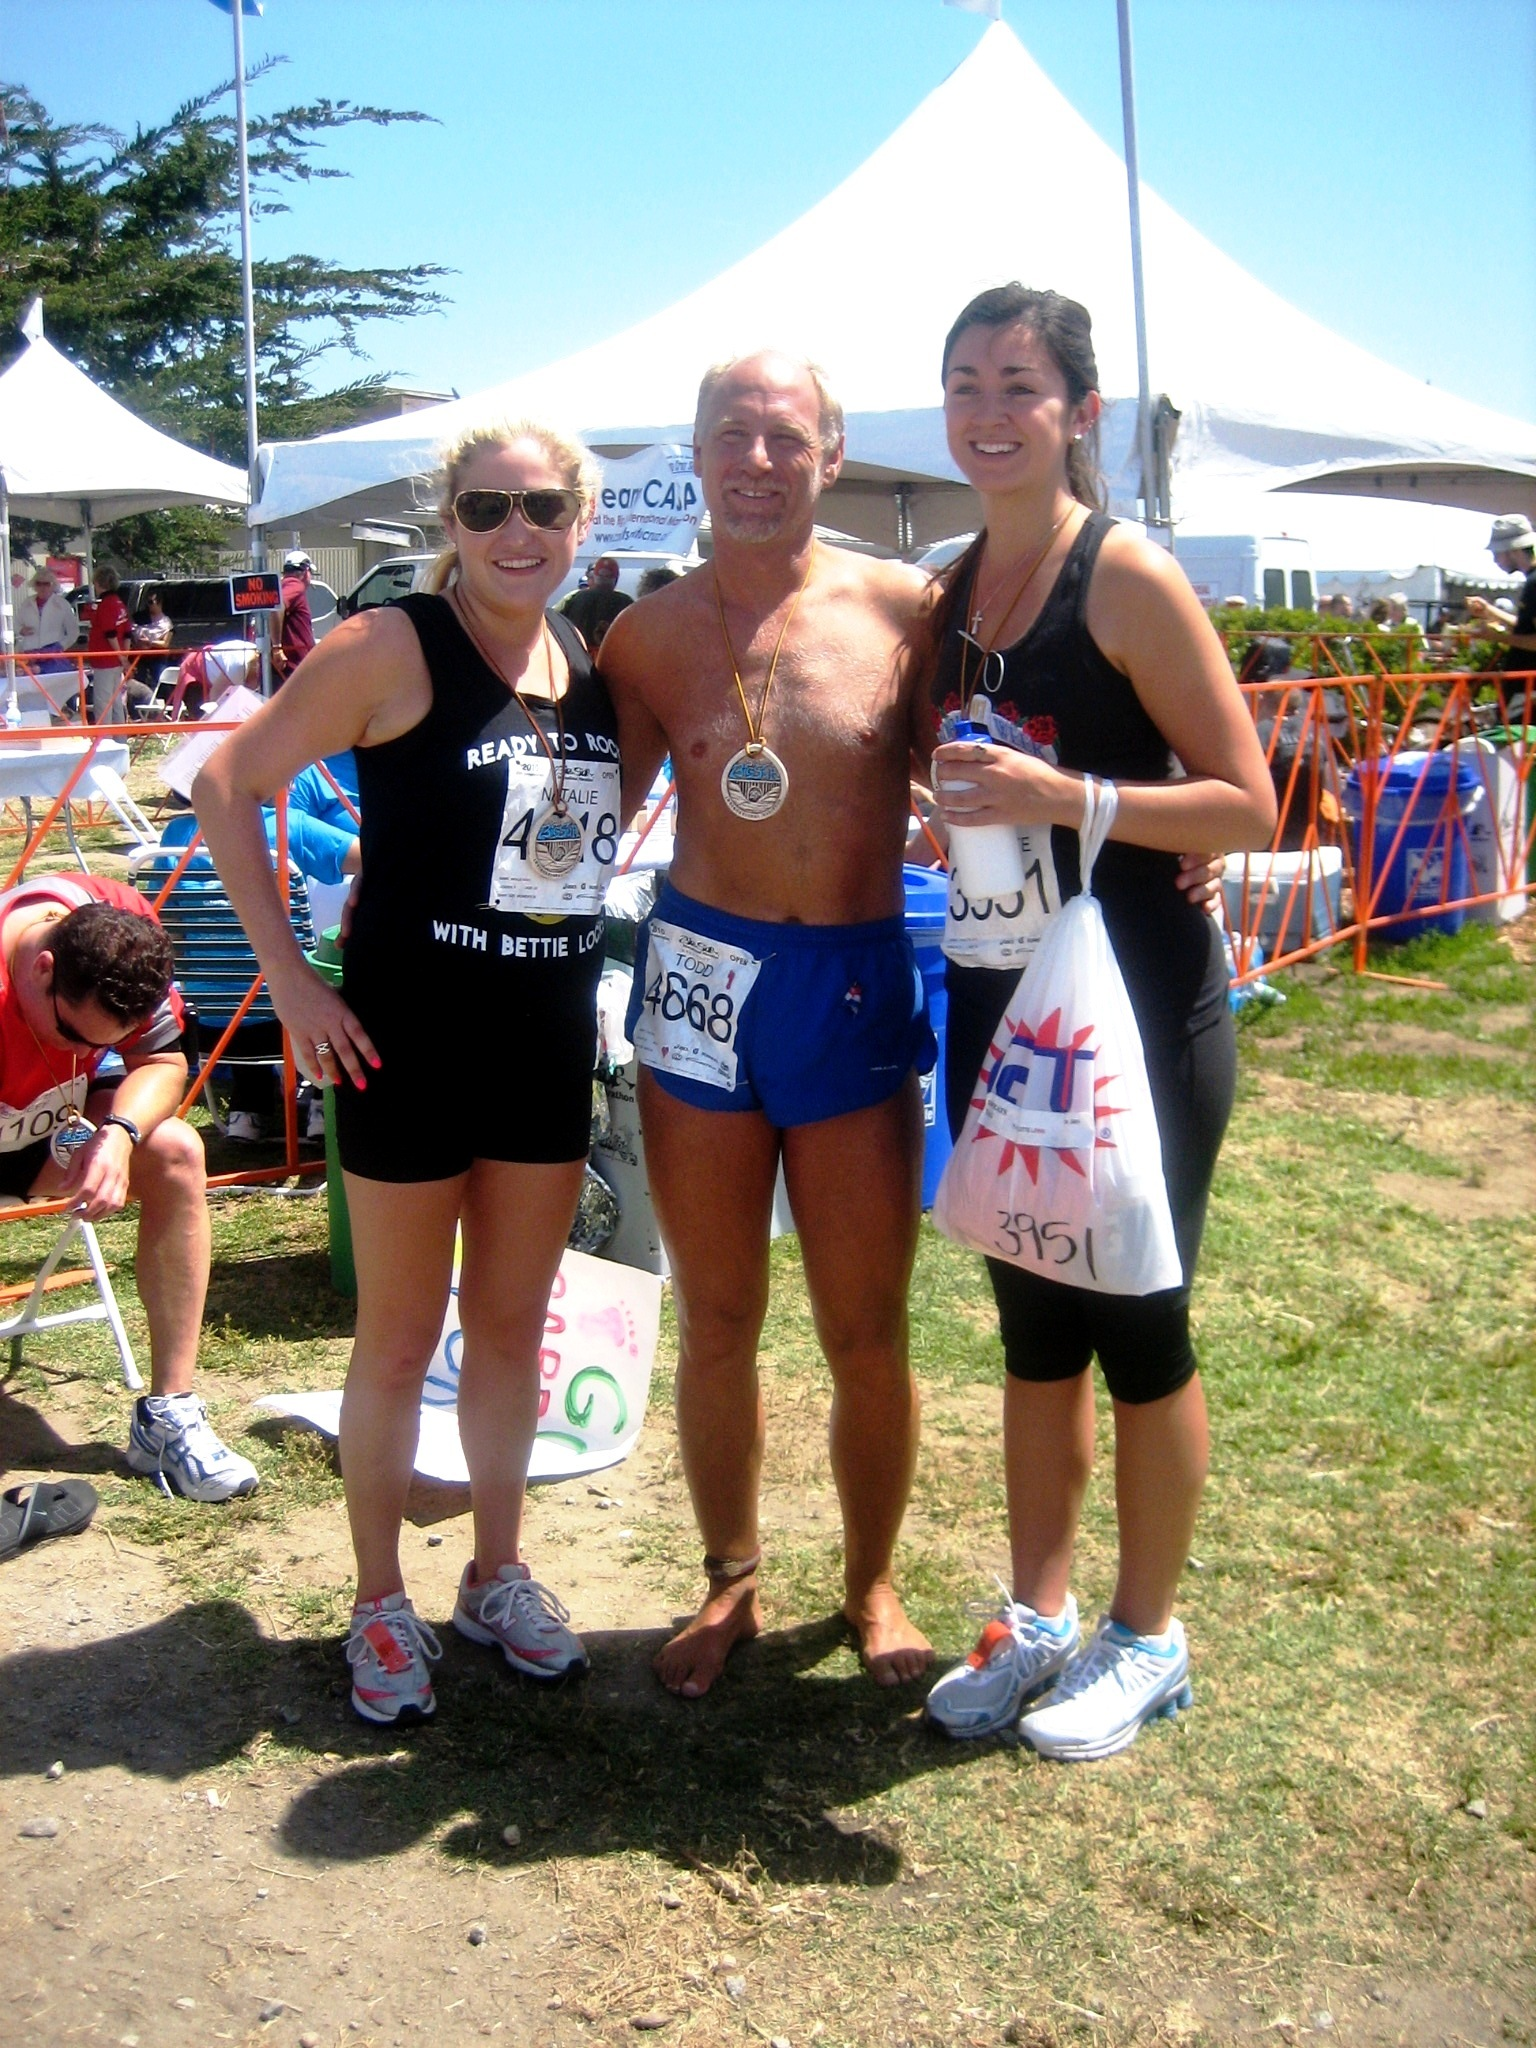 Todd with some fans after Big Sur International Marathon